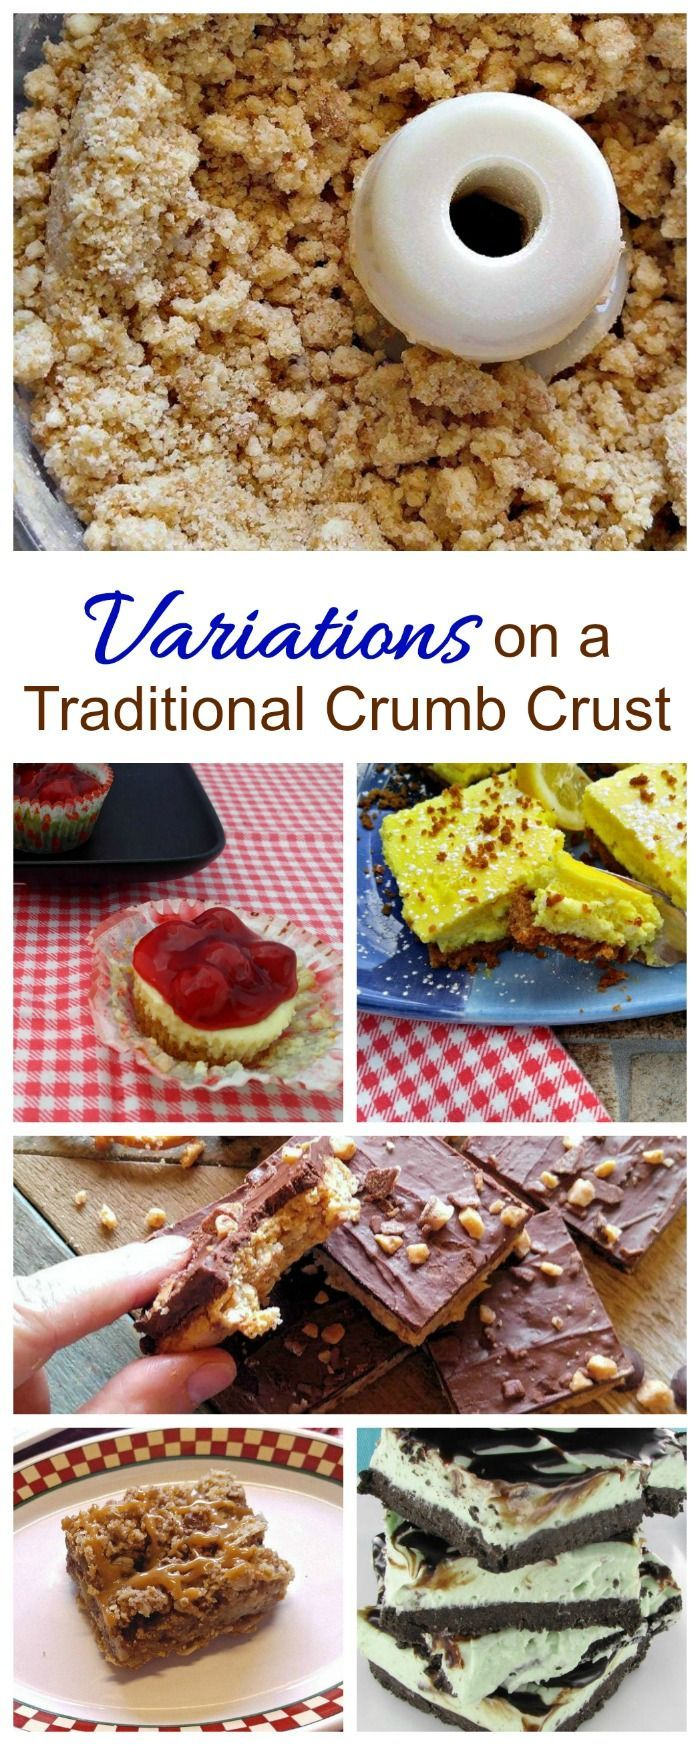 Variations on a crumb crust - graham cracker crust, pretzel crust, oatmeal crust, and Oreo crust are all good choices